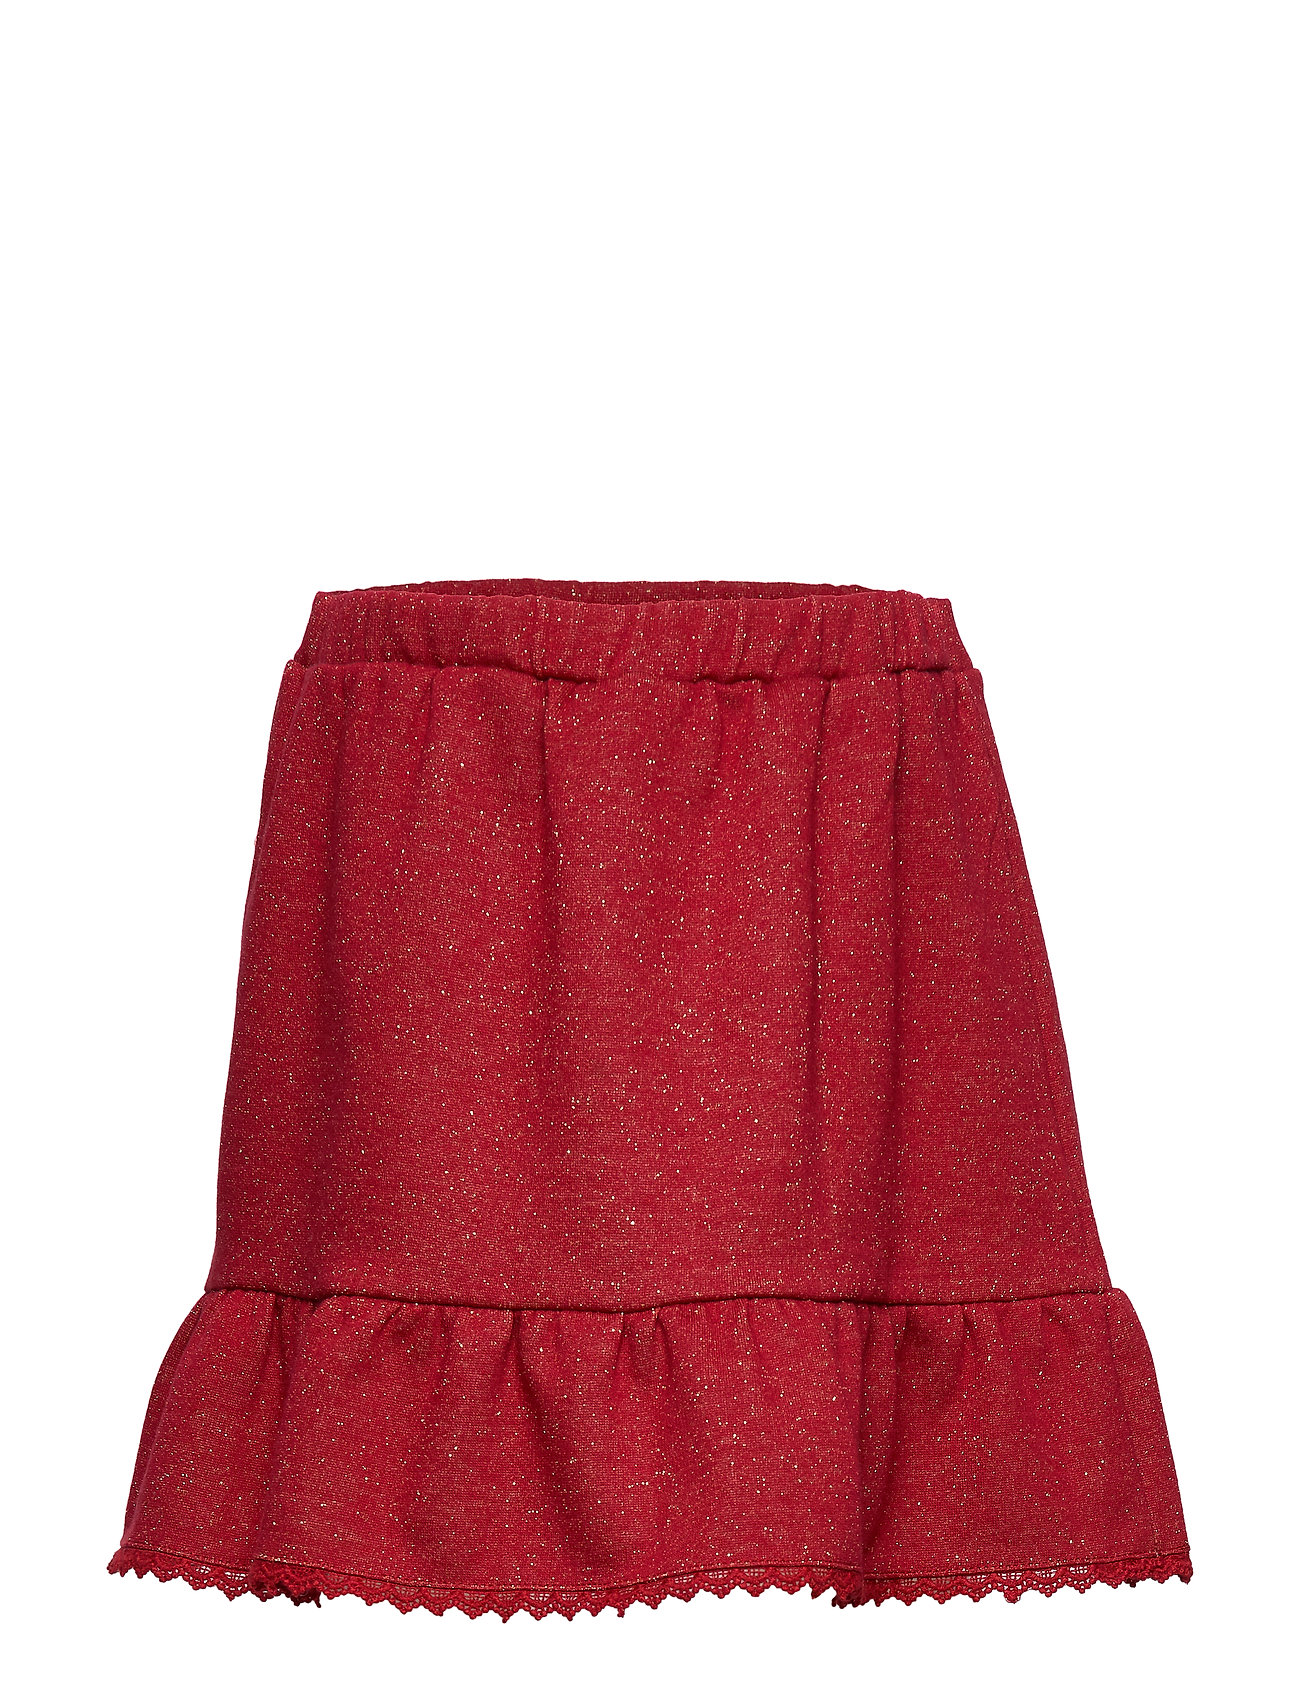 Noa Noa Miniature Skirt - RED DAHLIA